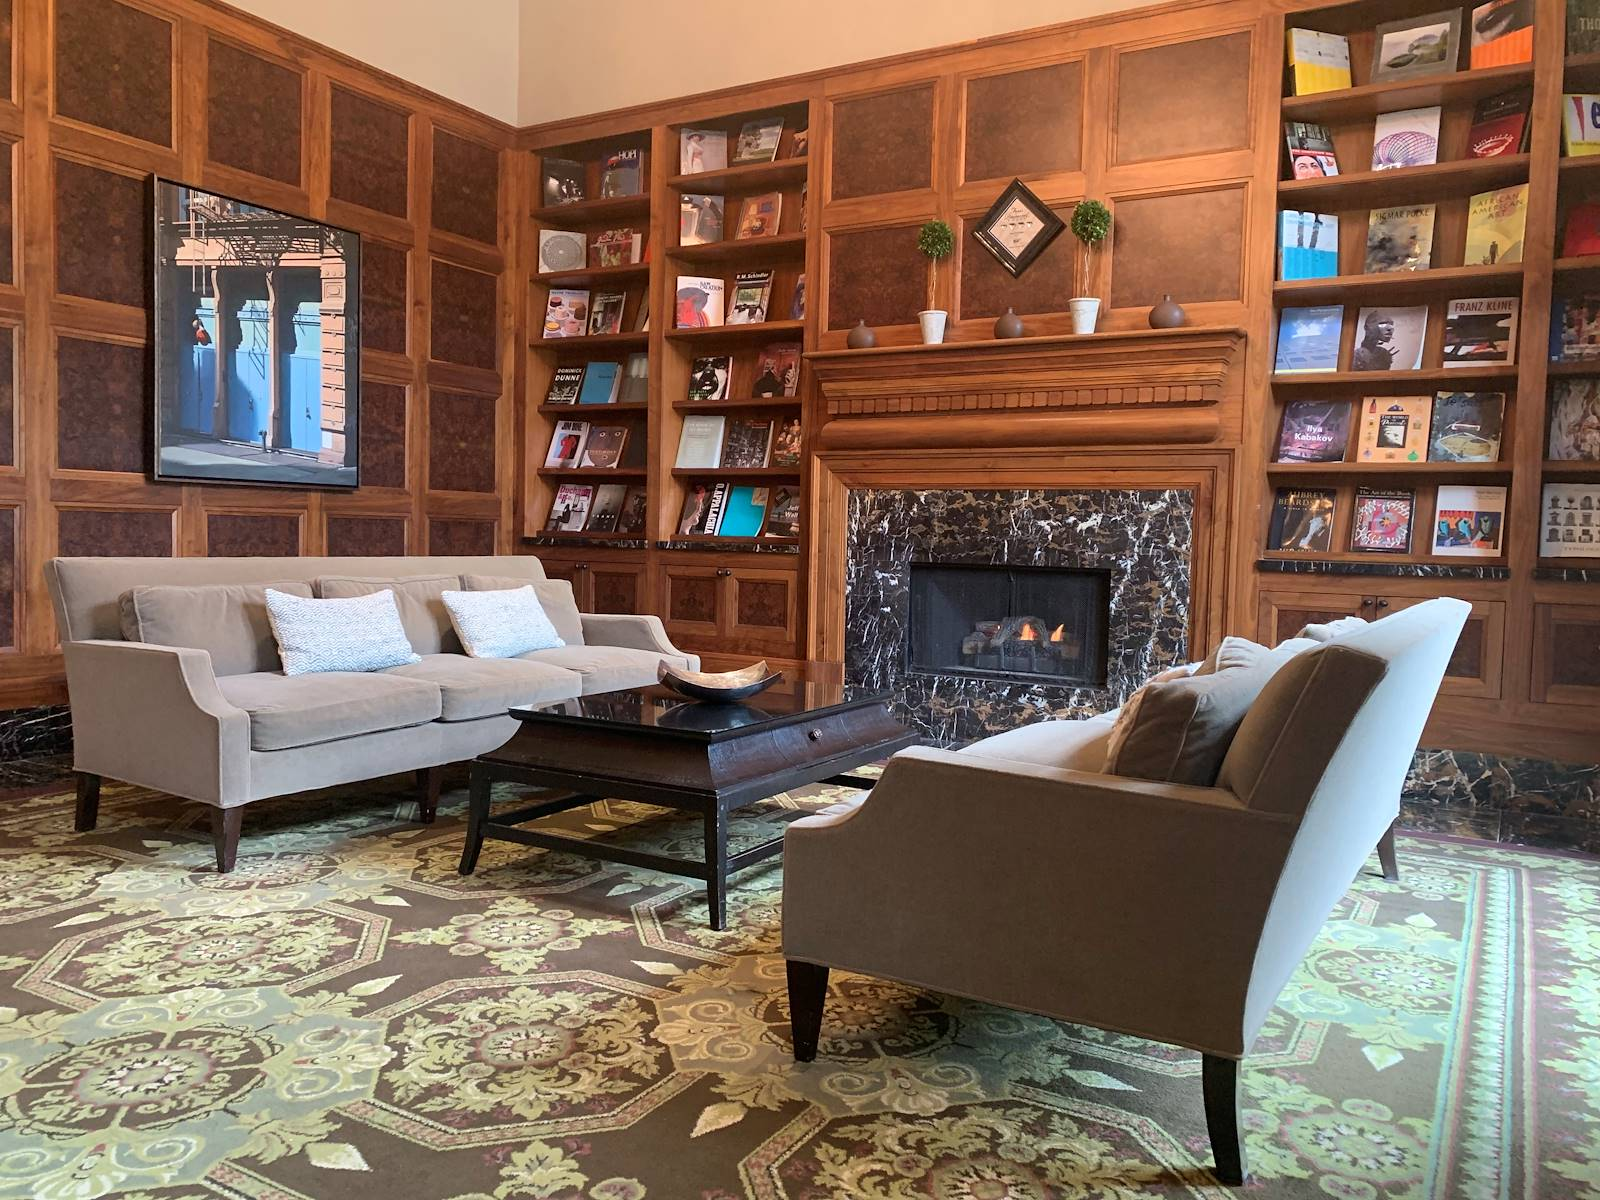 Library at Royal Park Hotel in Rochester MI